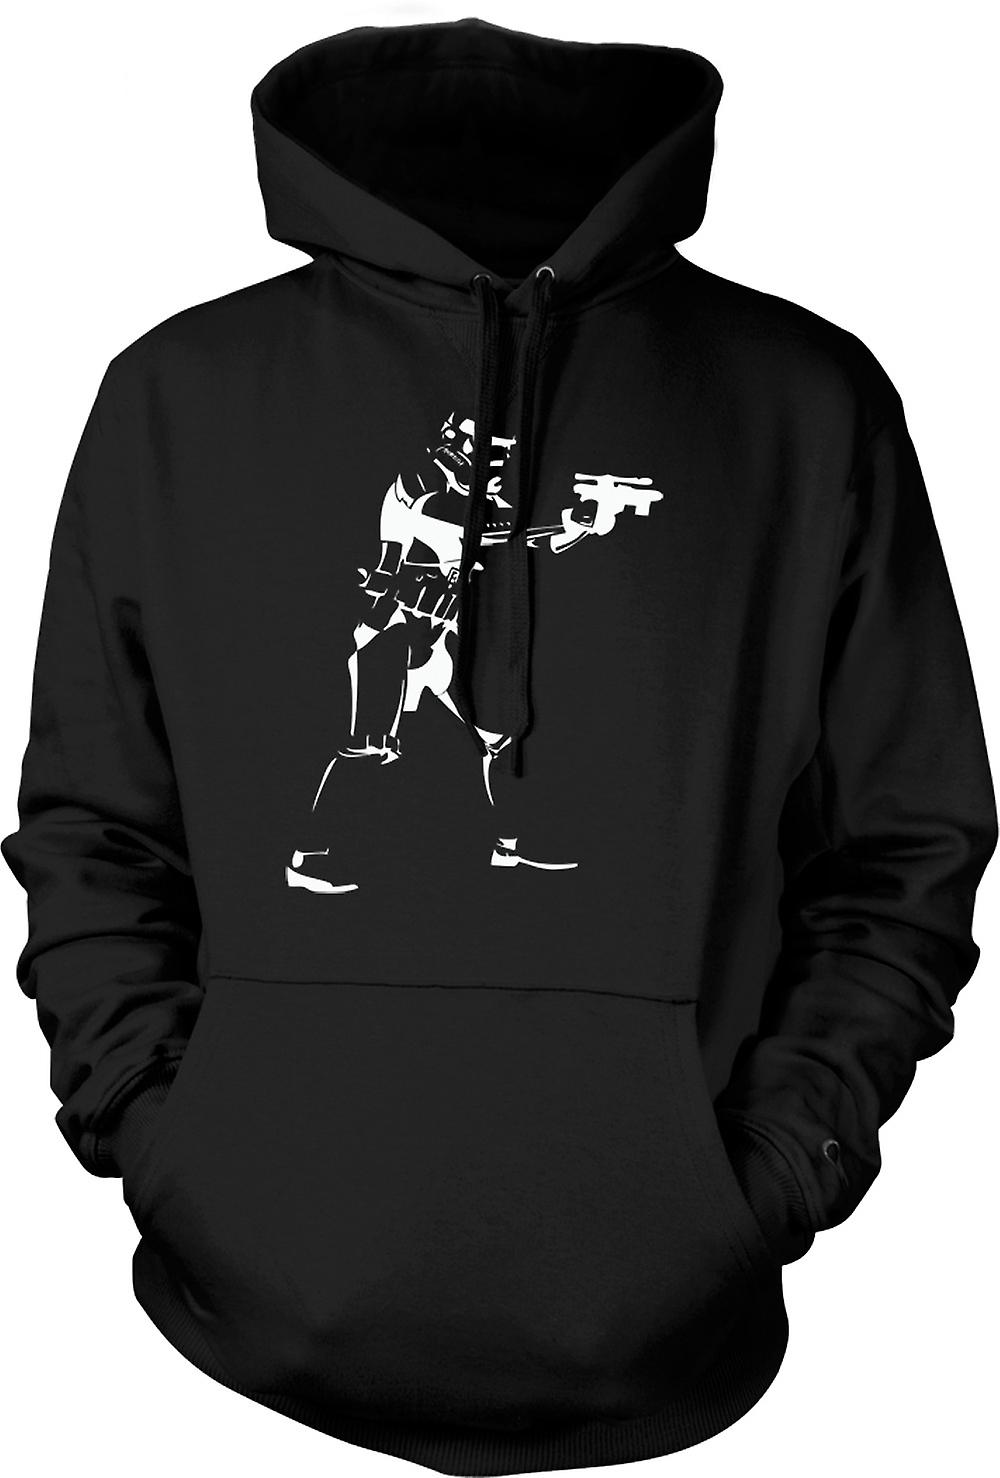 Mens Hoodie - Star Wars - Storm Trooper - popart